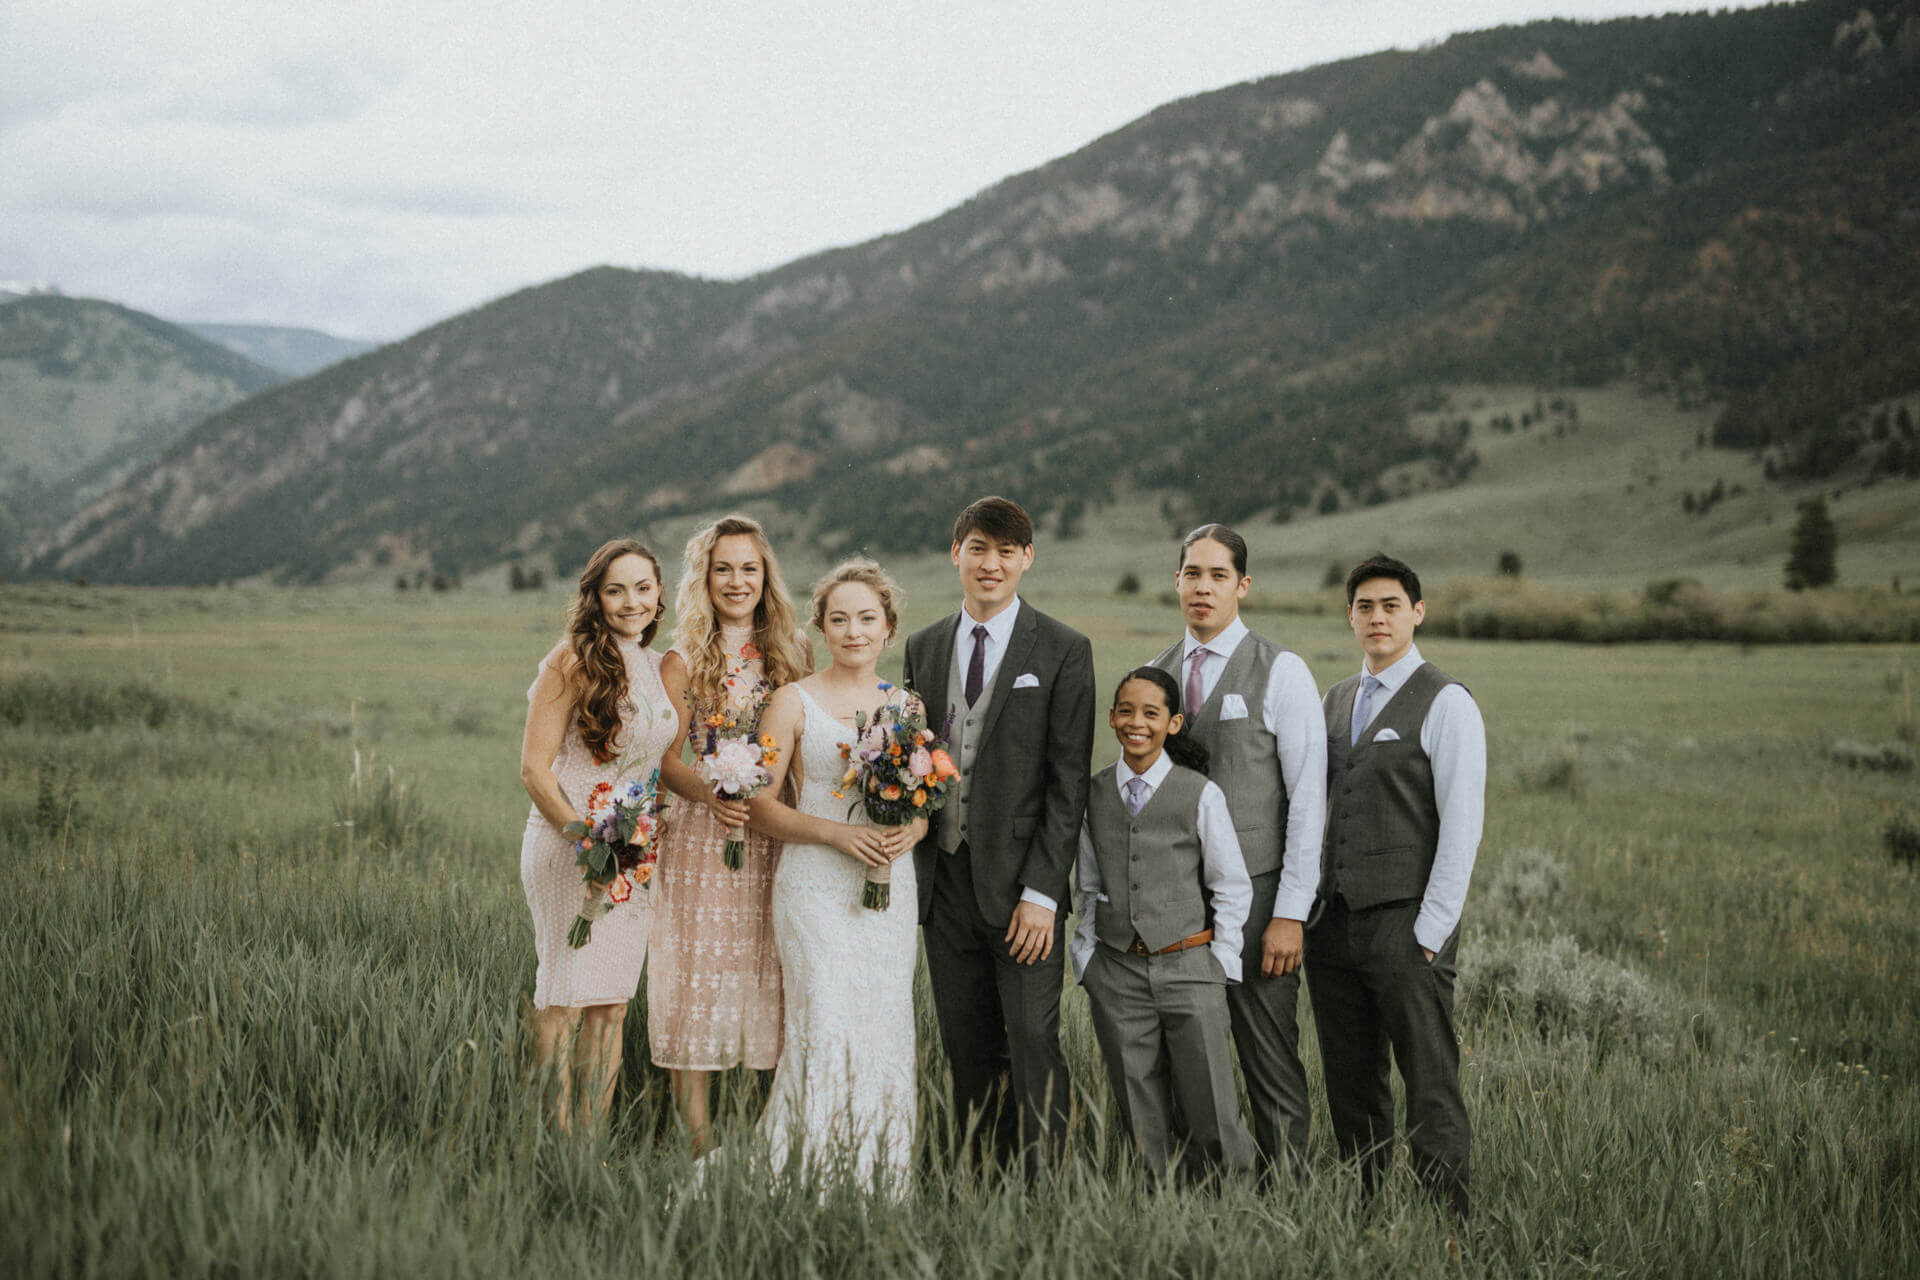 Big Sky Destination Wedding Photographer | Cluney Photography